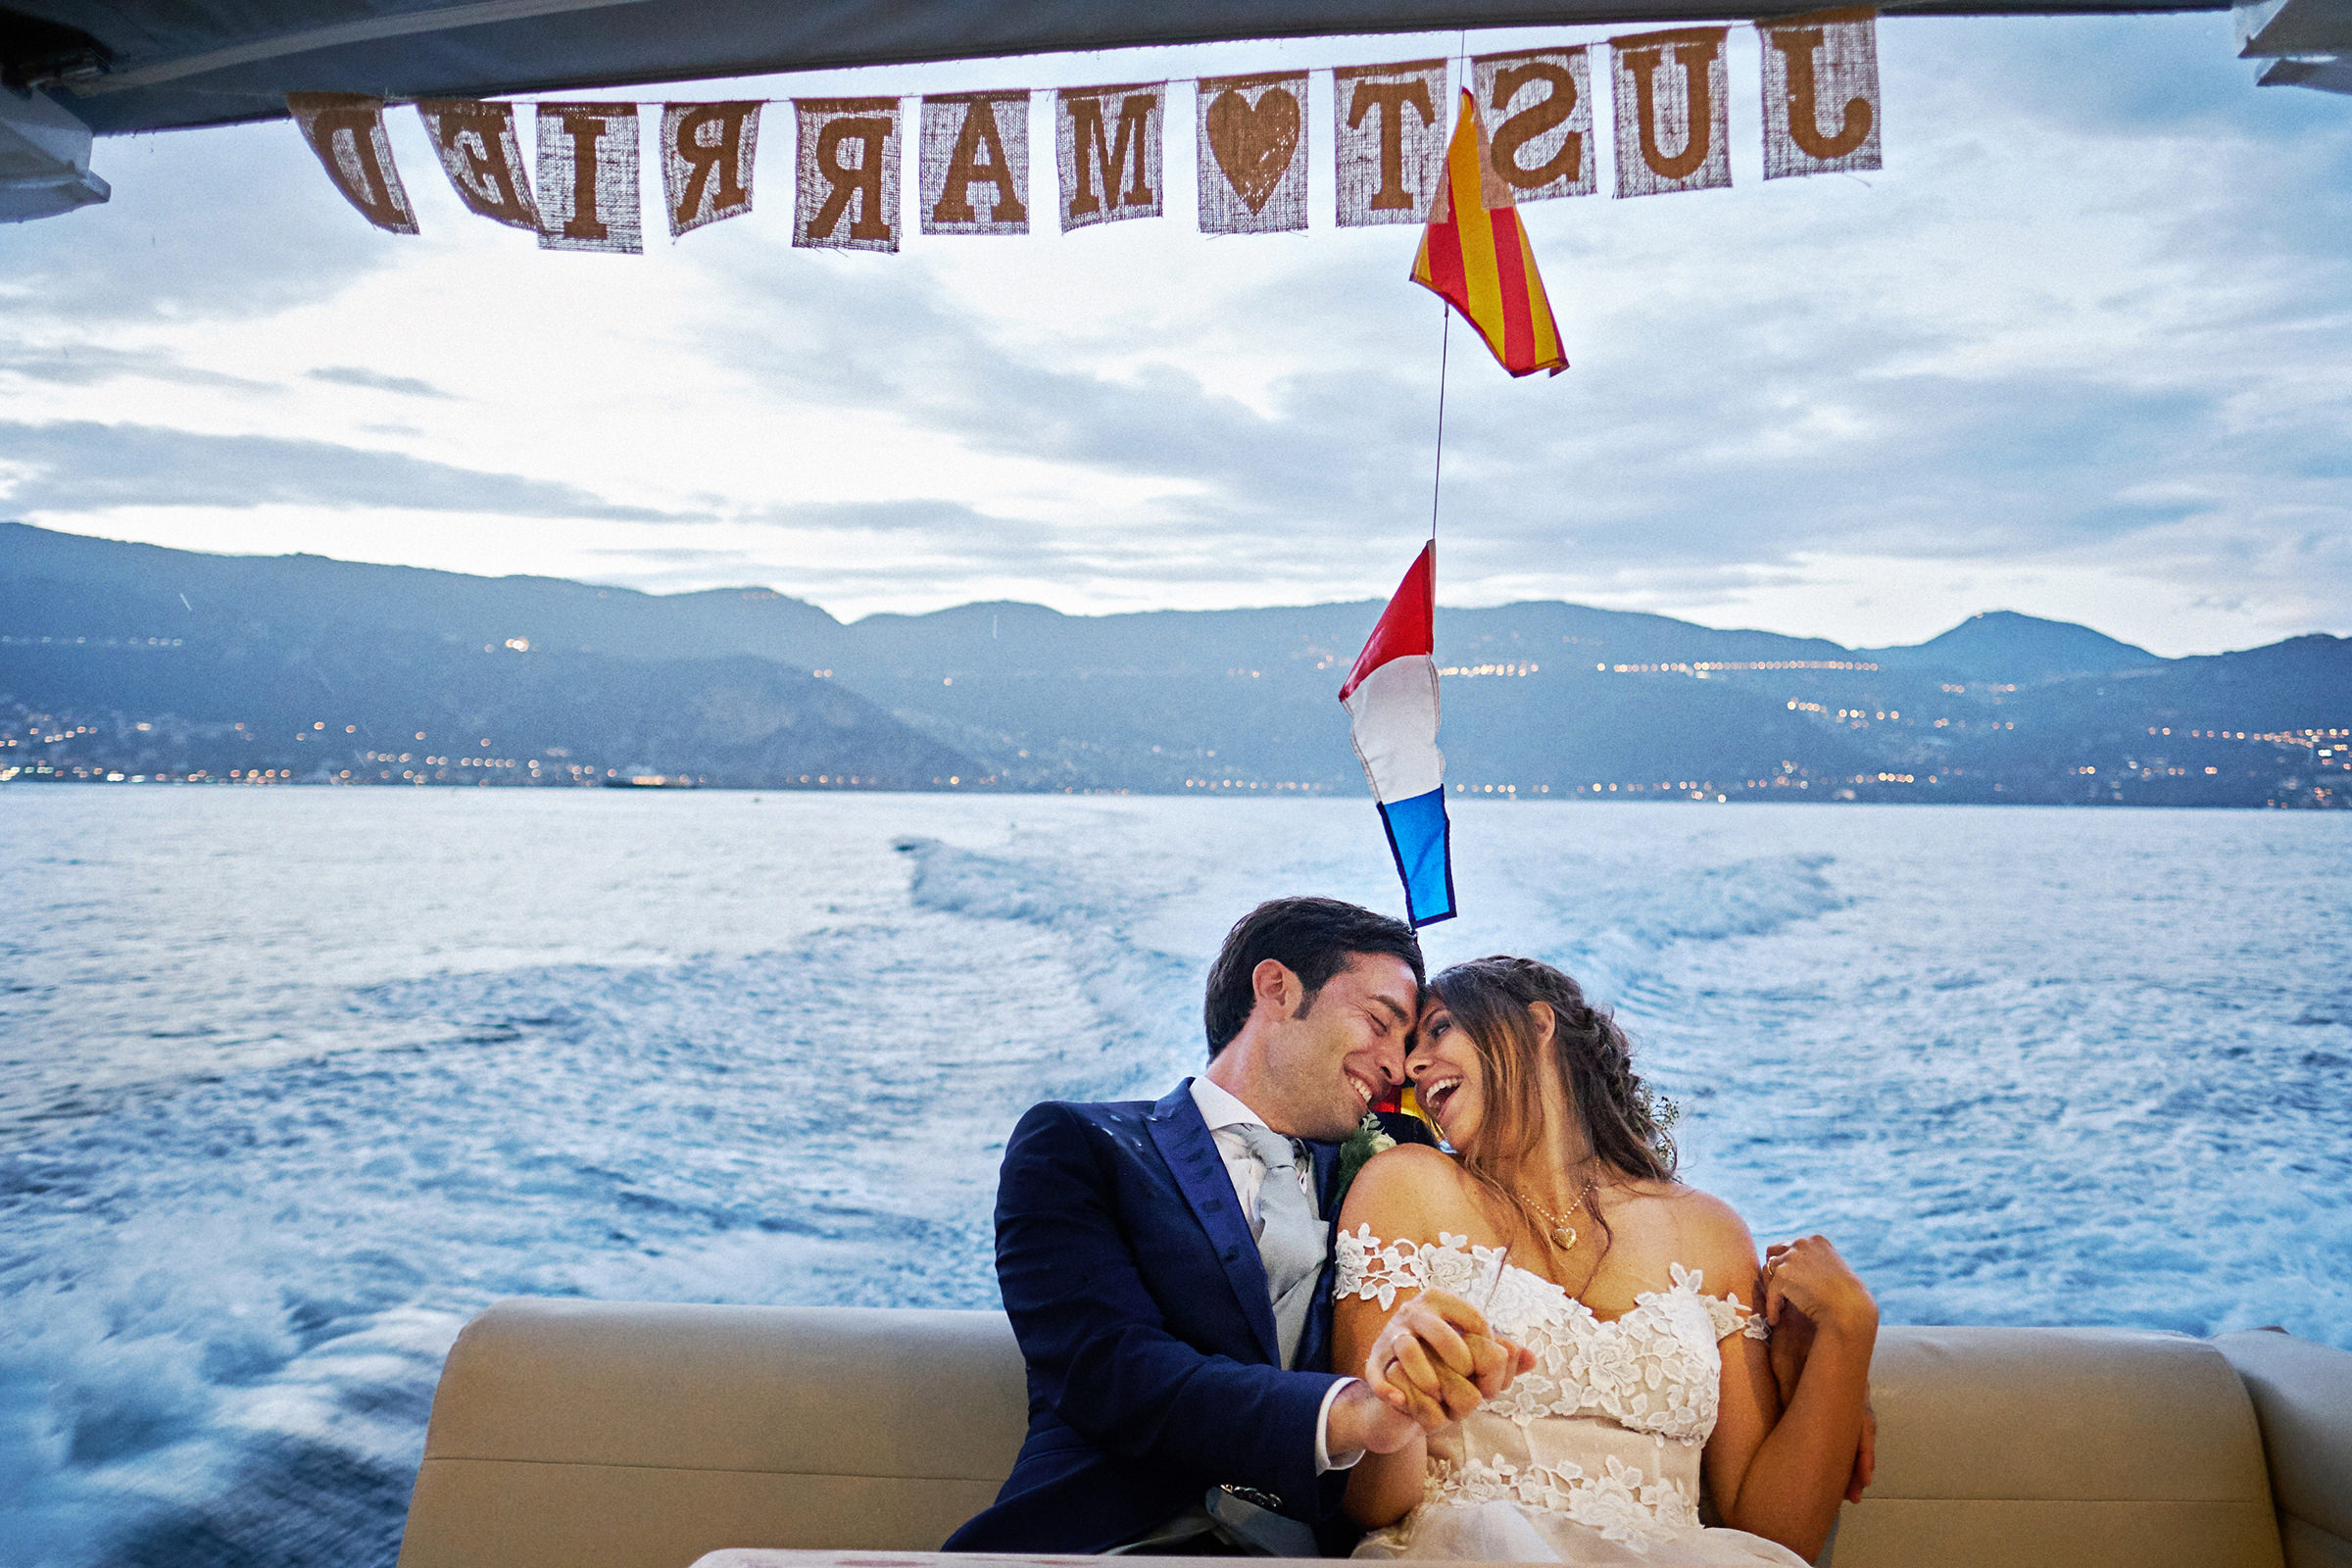 Couple exist by Just Married boat - photo by Andrea Bagnasco Fotografie